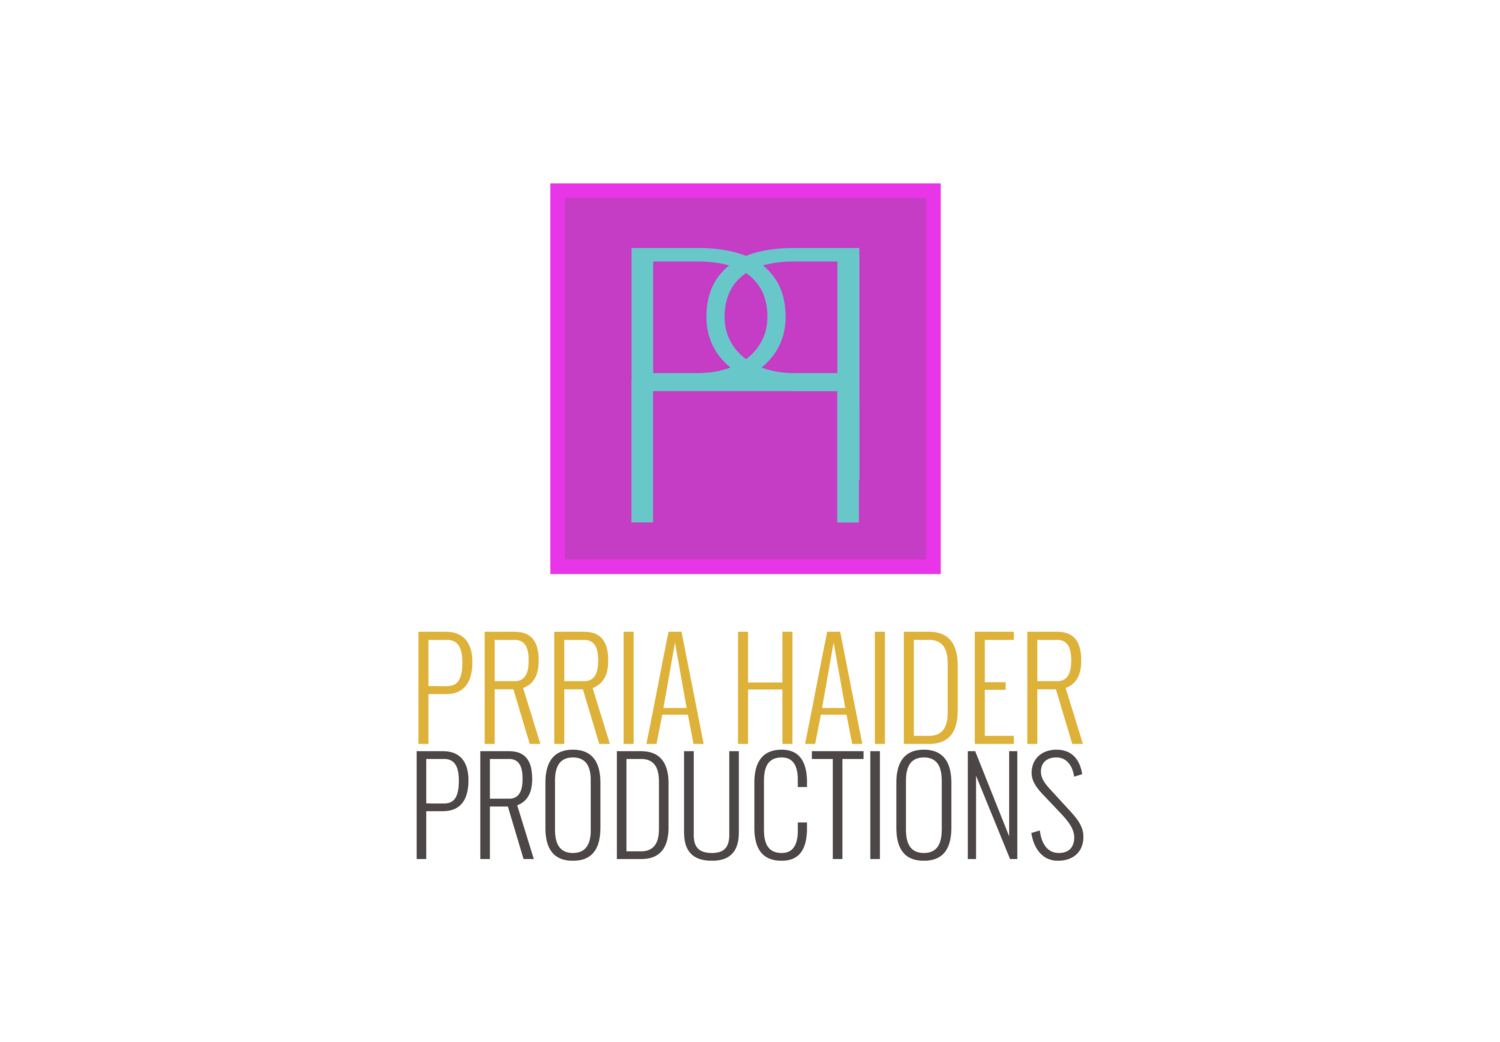 Prria Haider Productions